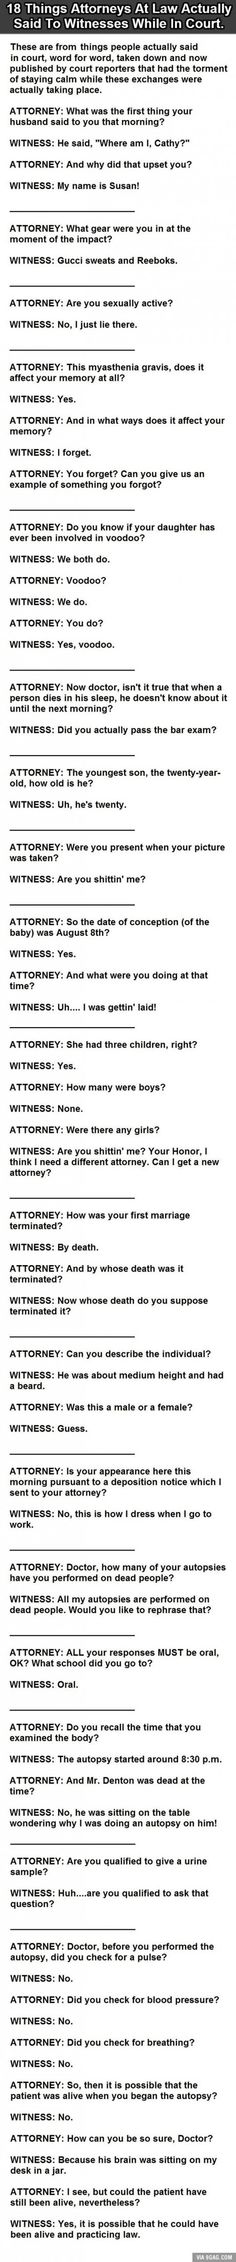 18 Things Actually Said To Witnesses In Court. (Truth or not, this is funny)